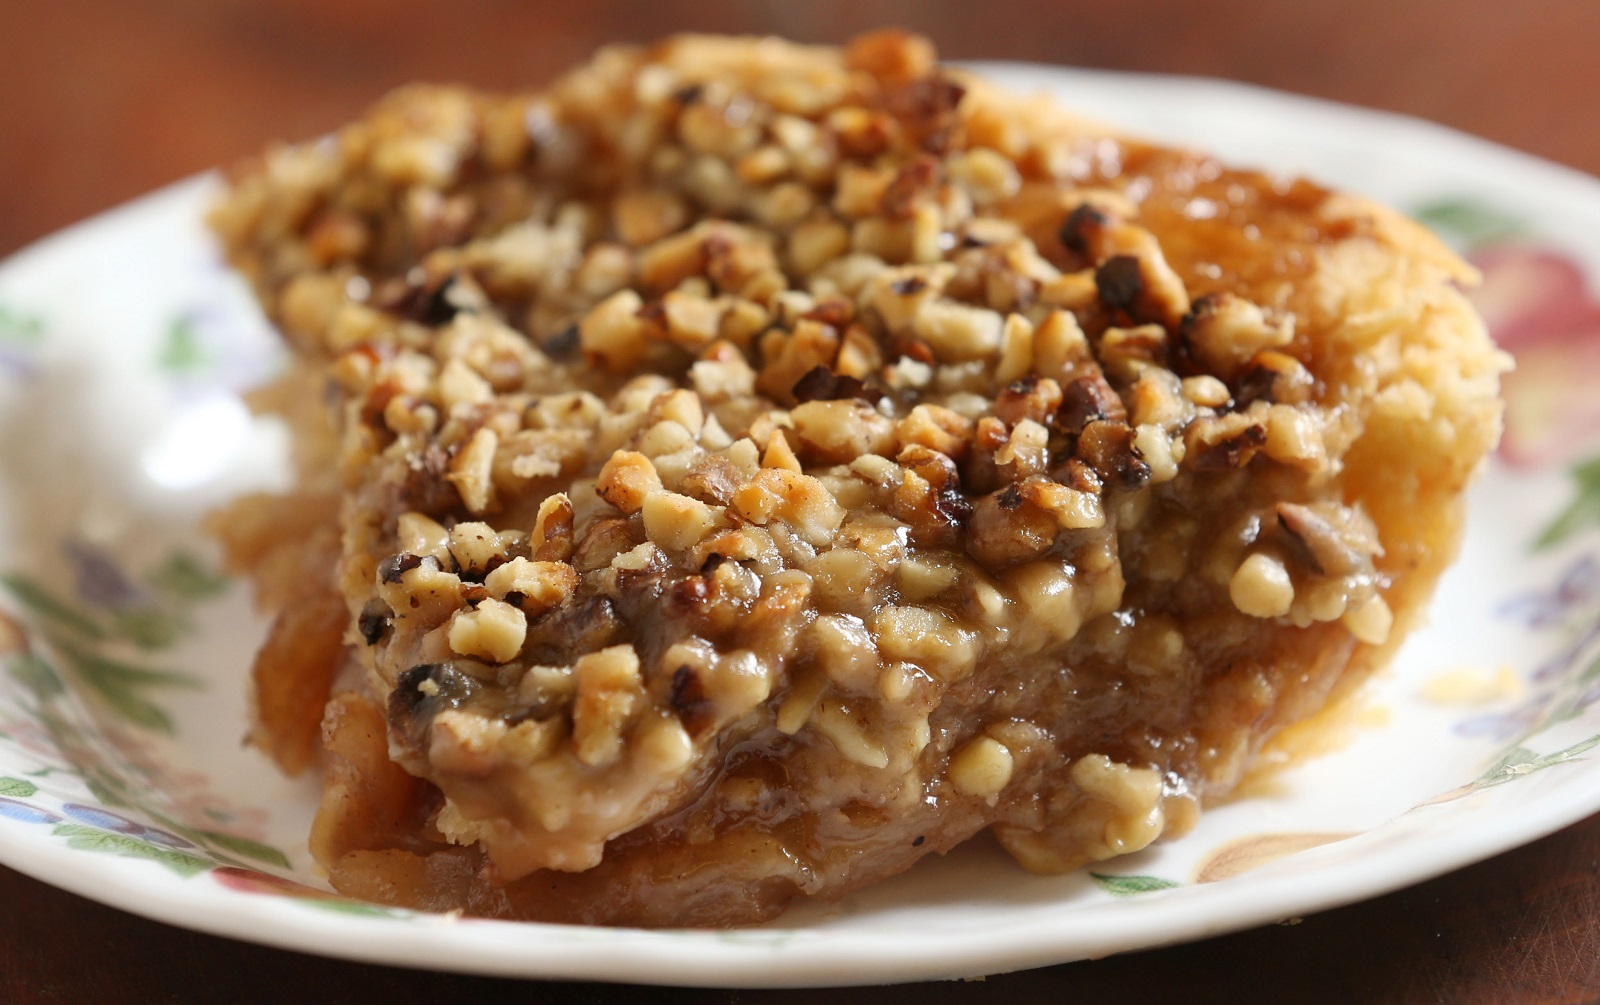 Caramel-walnut apple pie from Hall's Apple Farm. (Sharon Cantillon/Buffalo News)